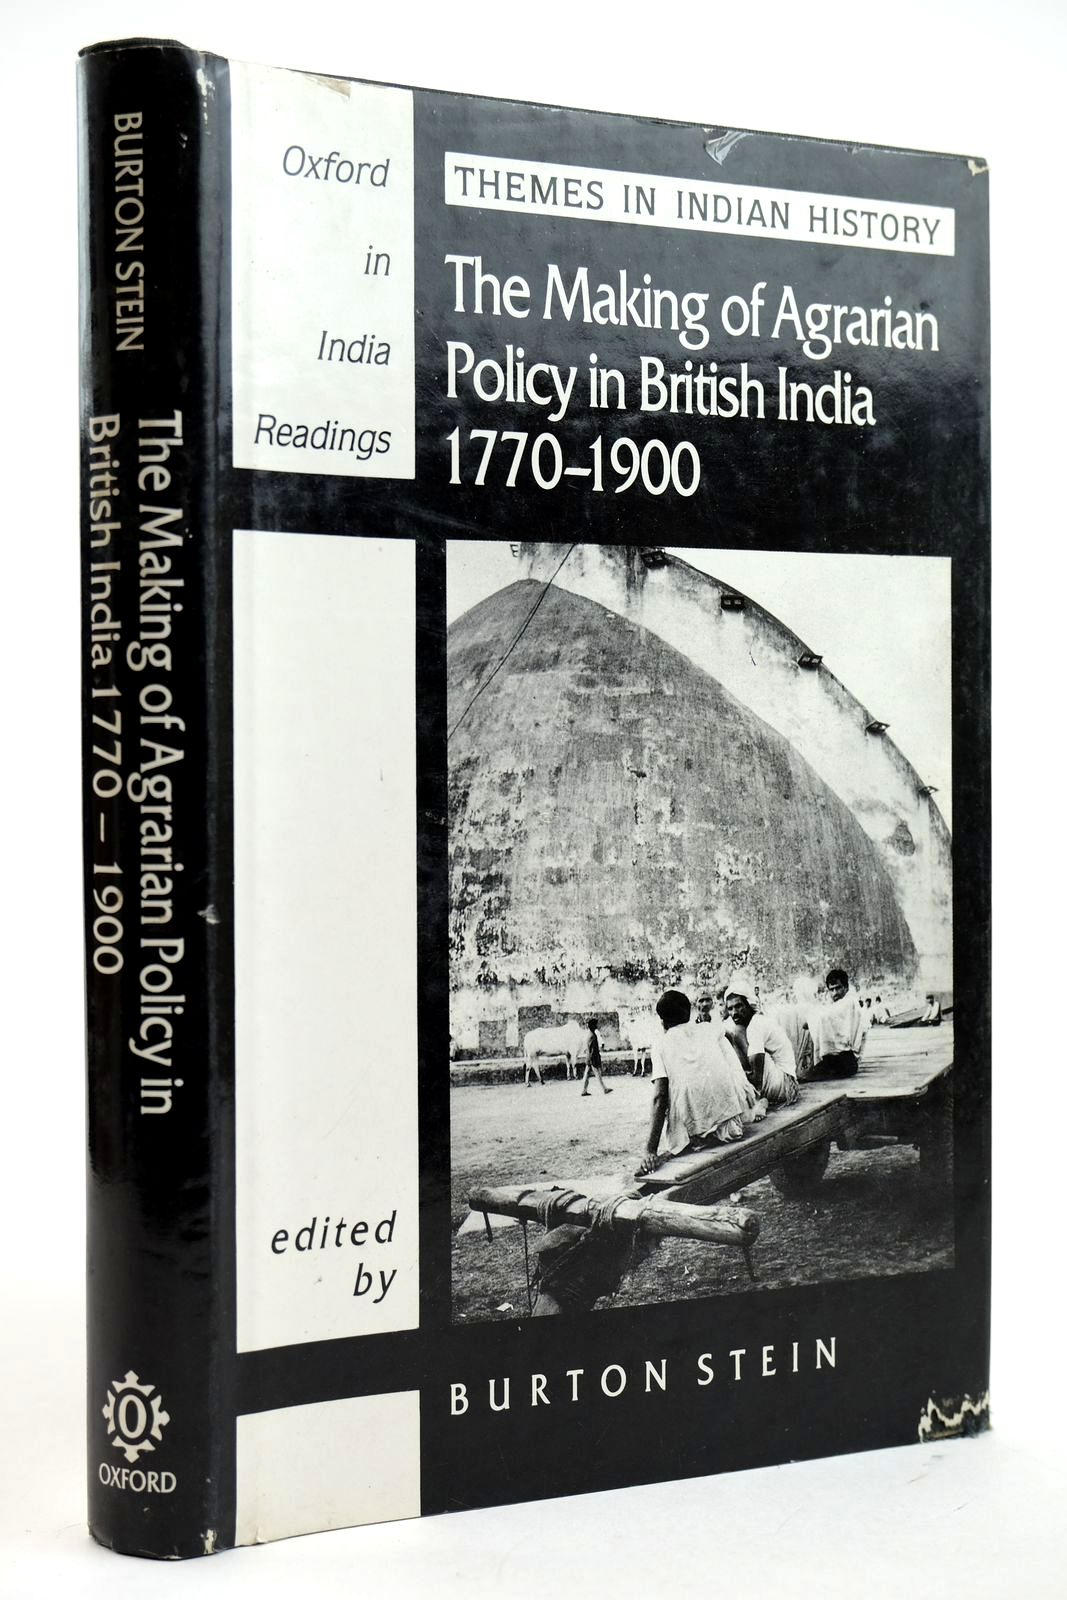 Photo of THE MAKING OF AGRARIAN POLICY IN BRITISH INDIA 1770-1900 written by Stein, Burton published by Oxford University Press (STOCK CODE: 2132516)  for sale by Stella & Rose's Books